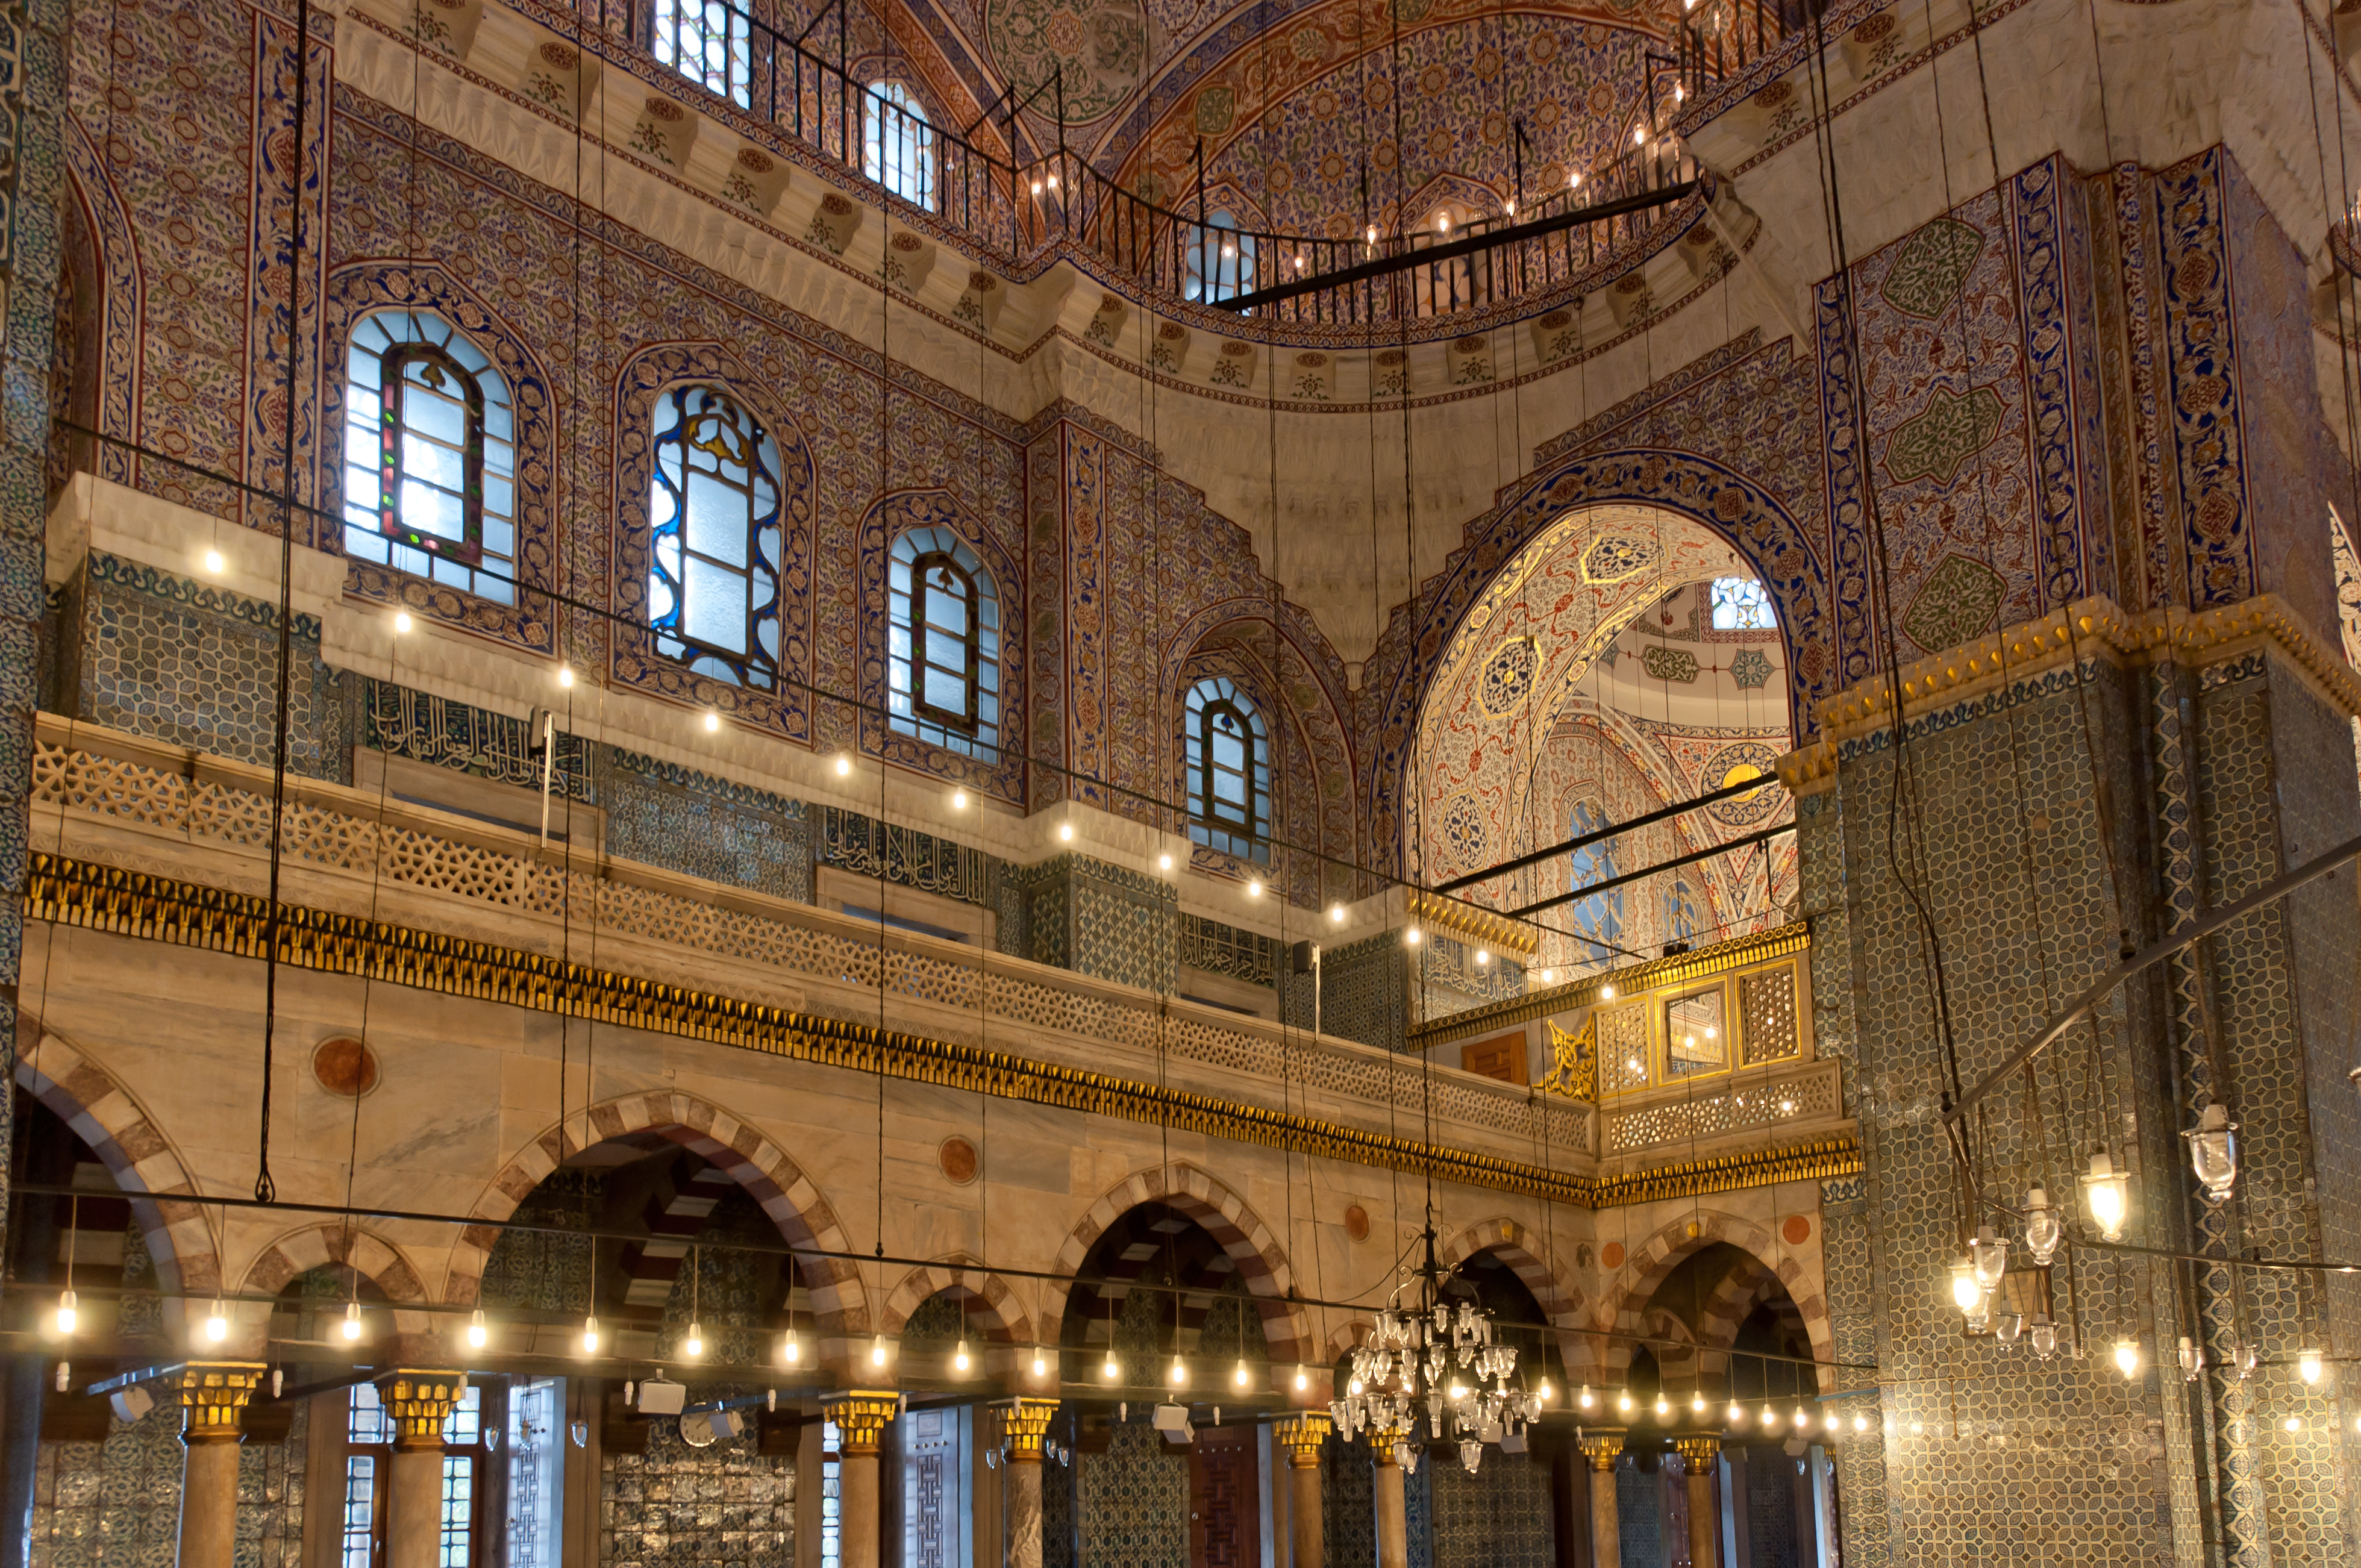 Interior view of the New Mosque in Istanbul